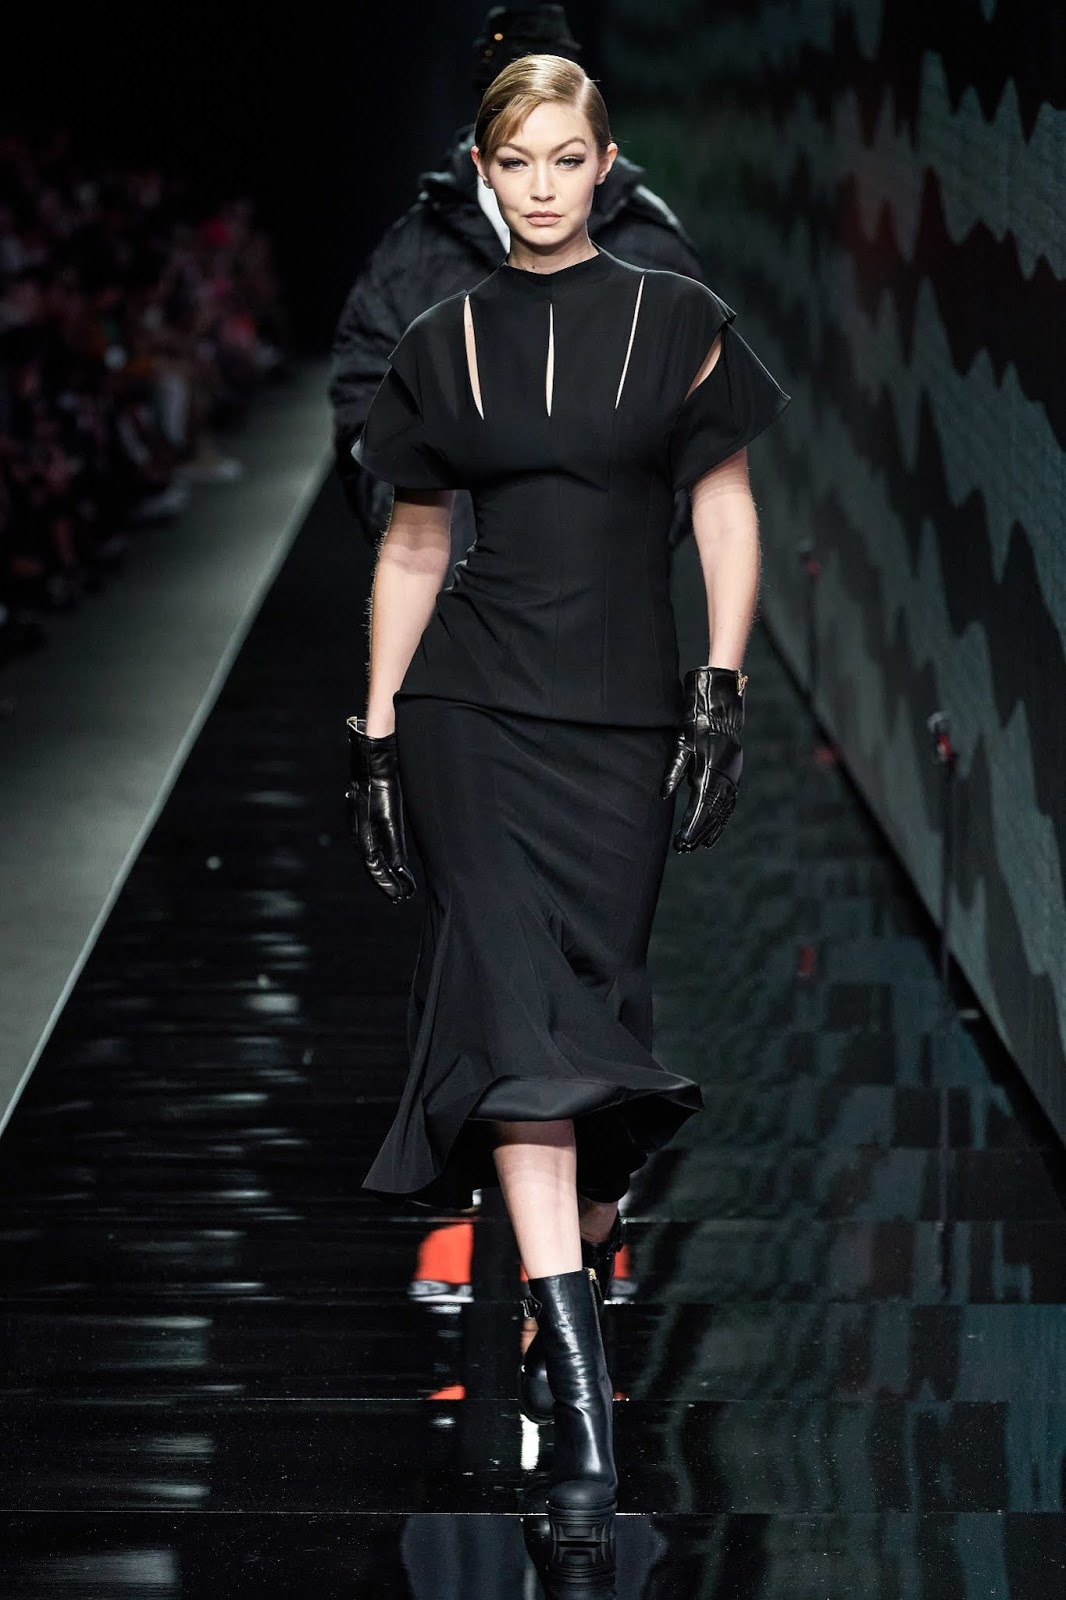 Gigi Hadid's Versace FW20 Milan Fashion Show look was an elegant and demure all-black one